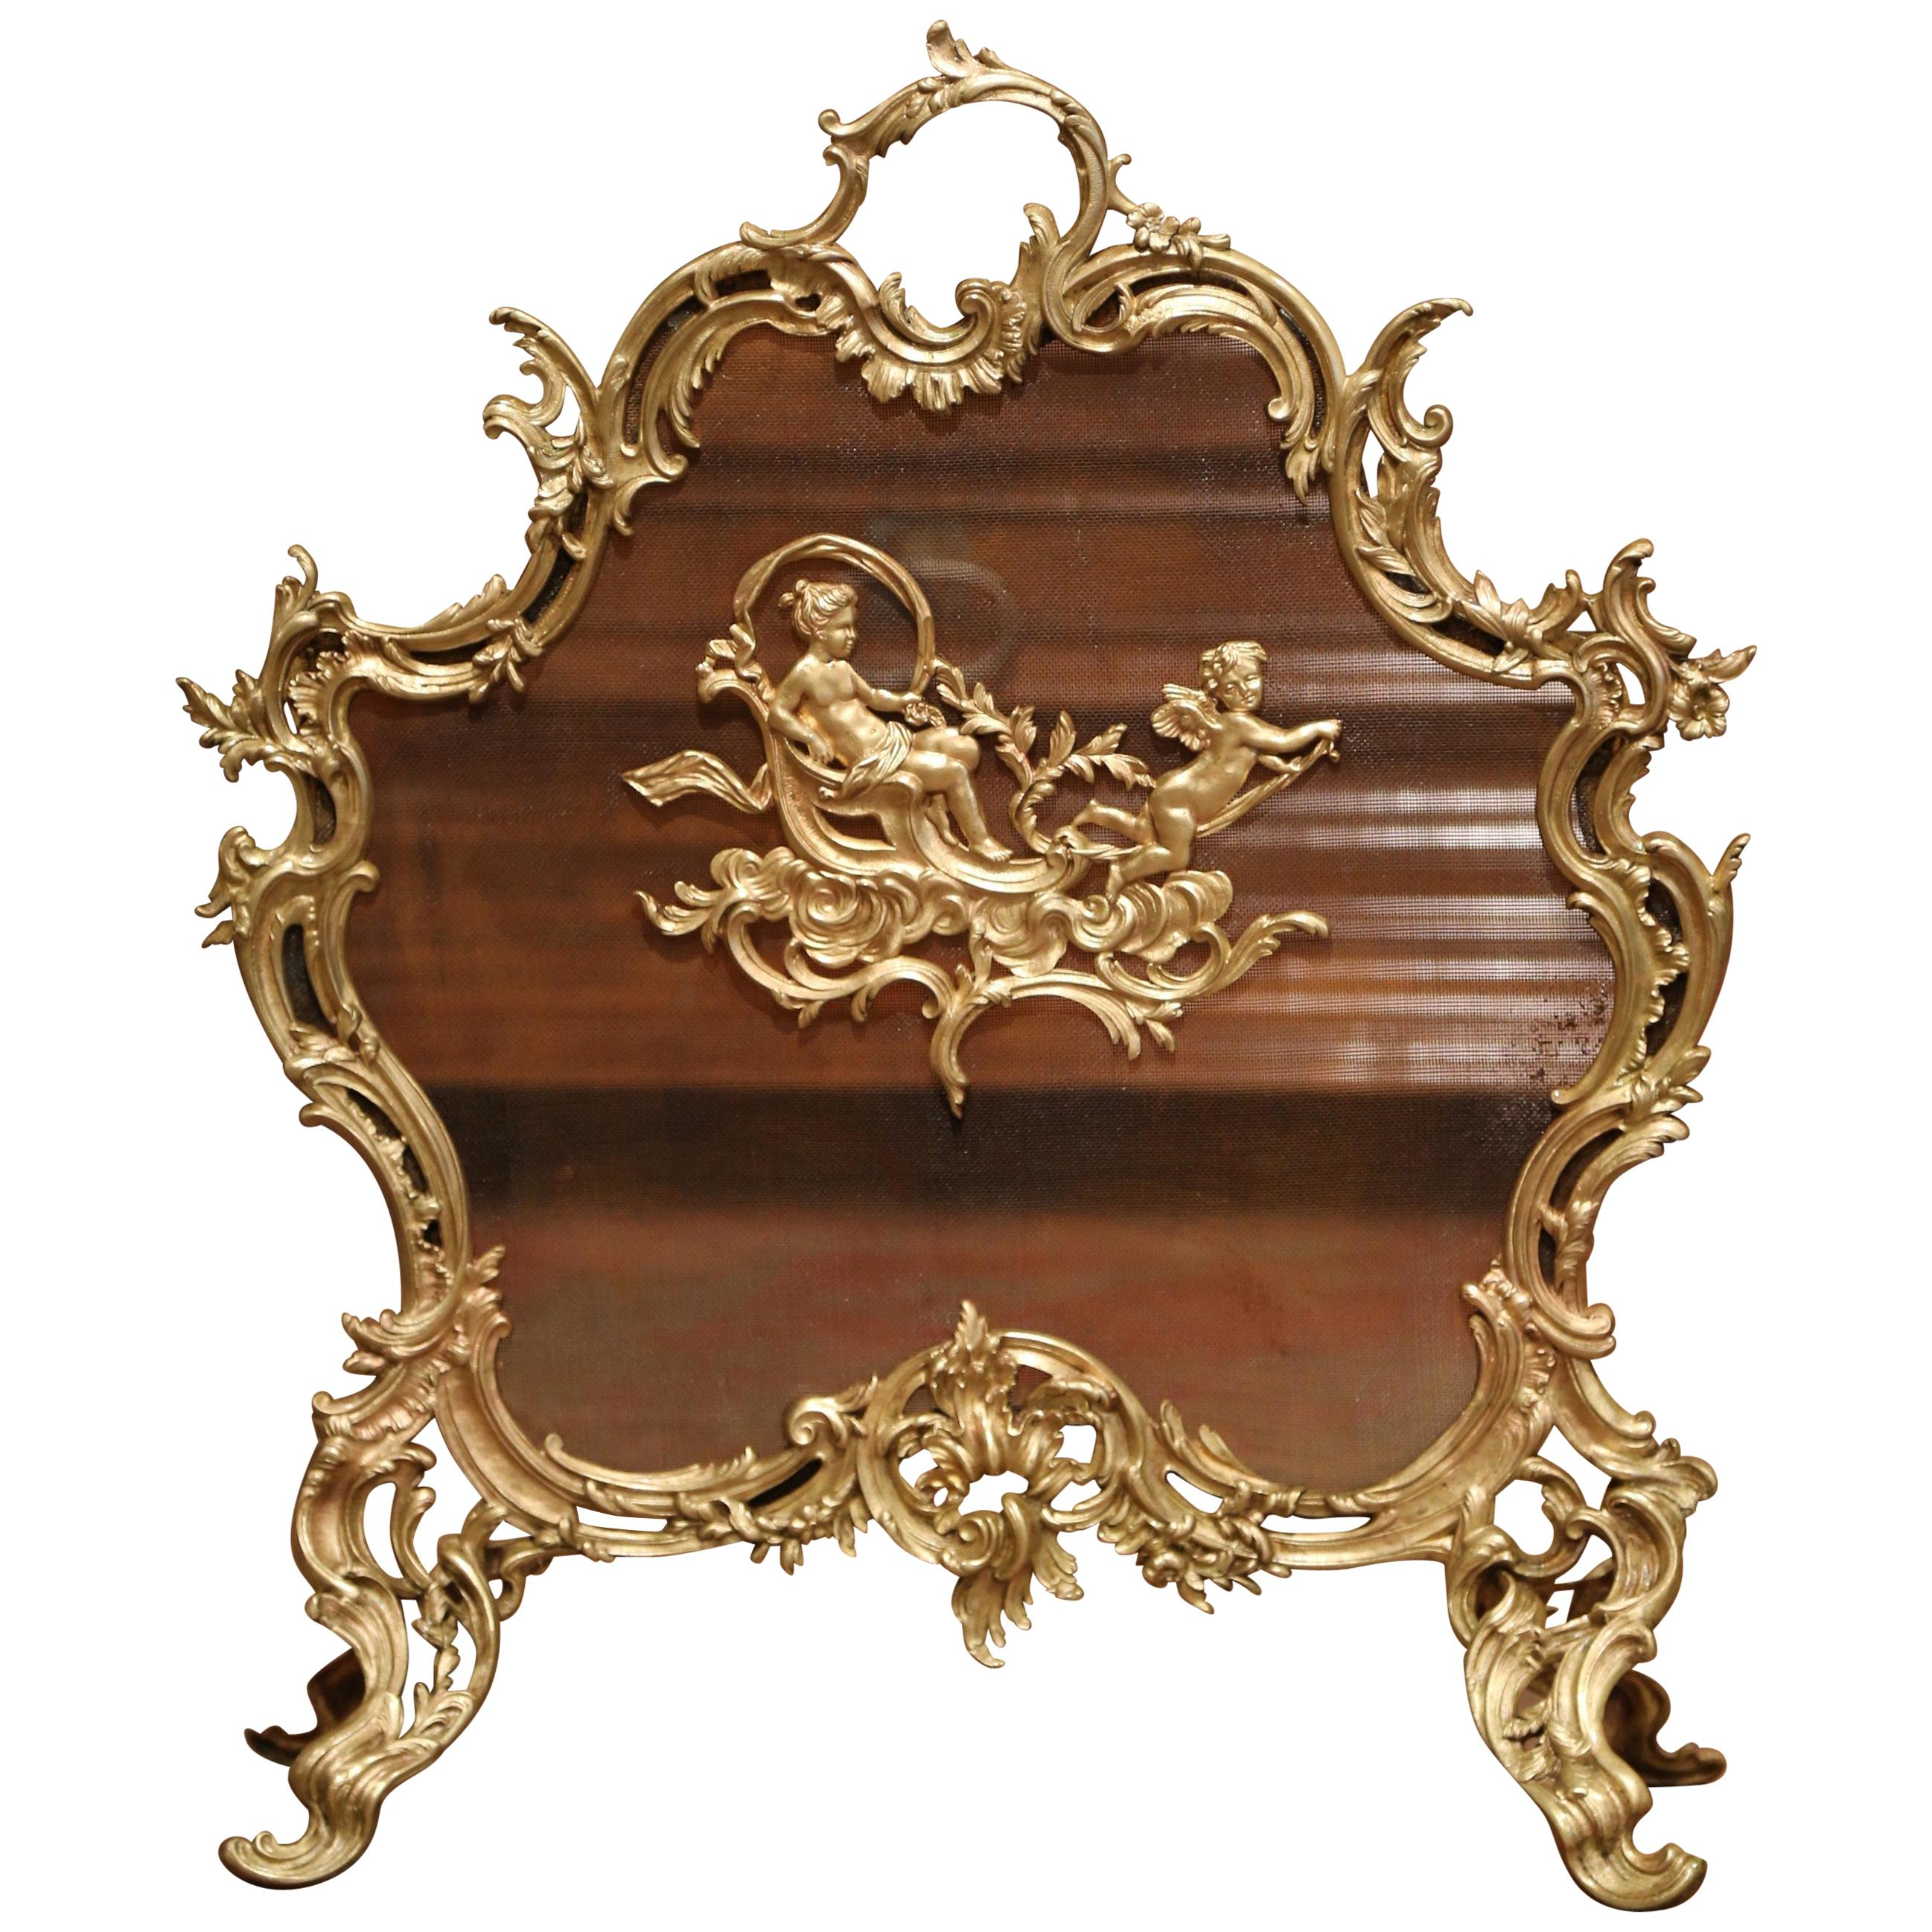 Antique Fireplace Screen >> Antique And Vintage Fireplace Screens 318 For Sale On 1stdibs